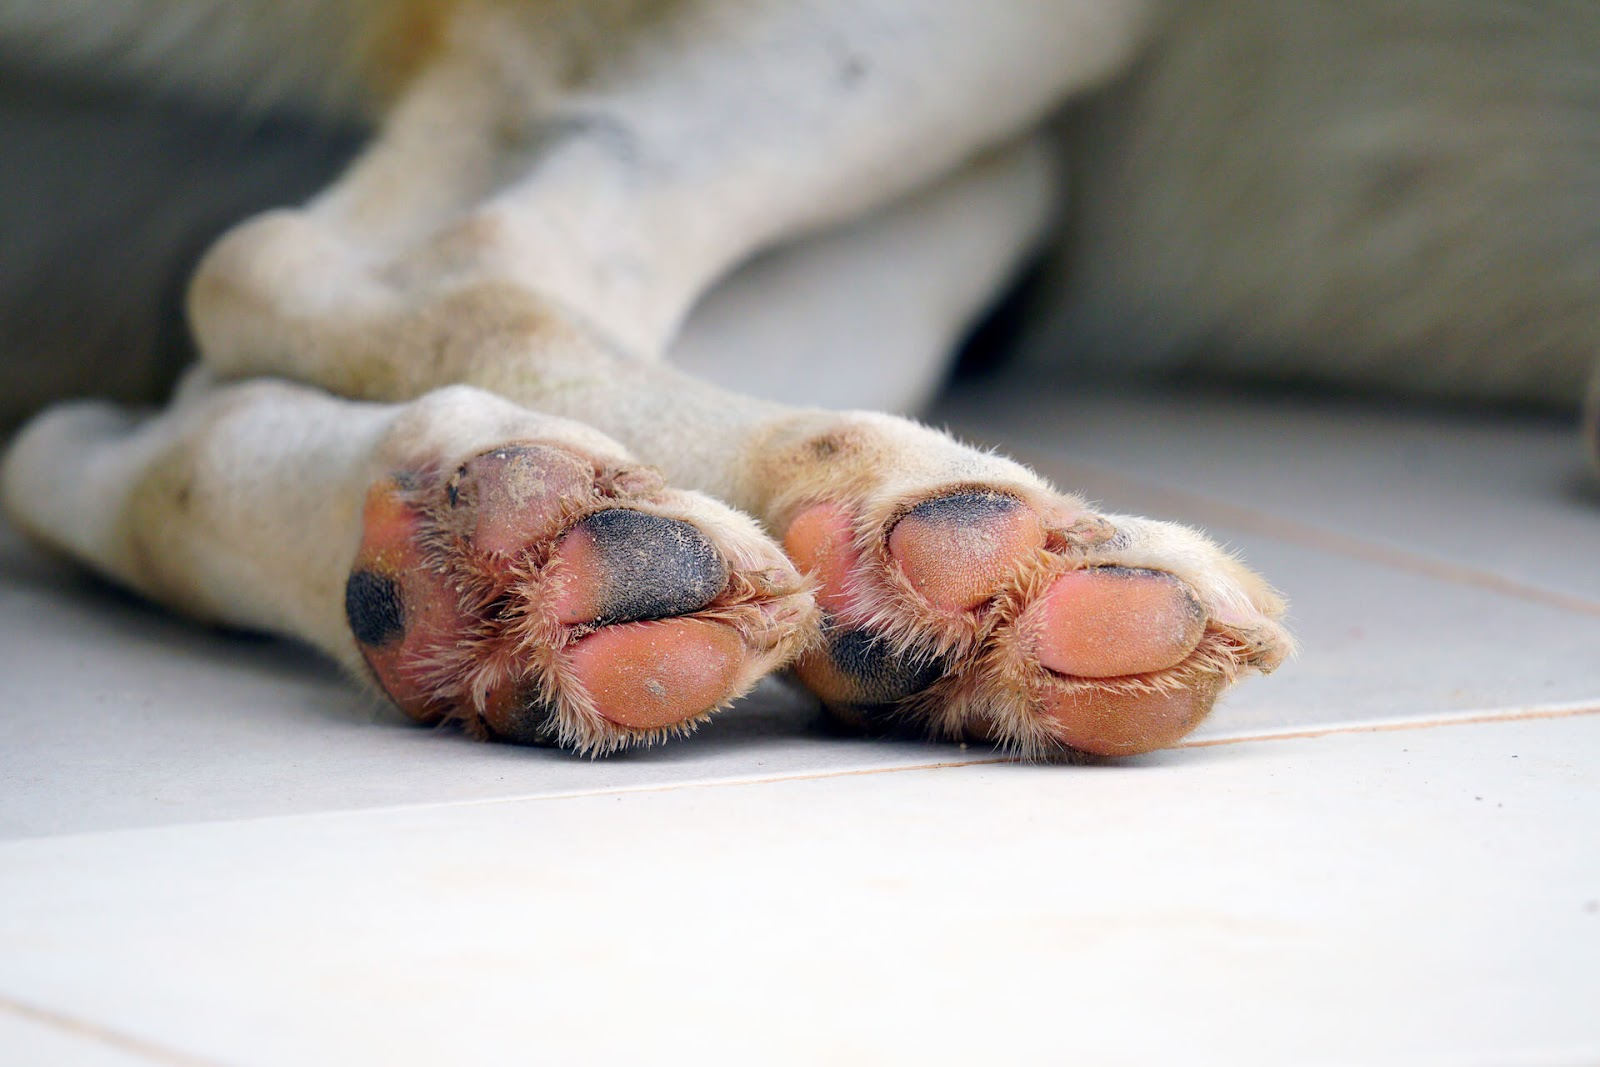 Dog with burned paws